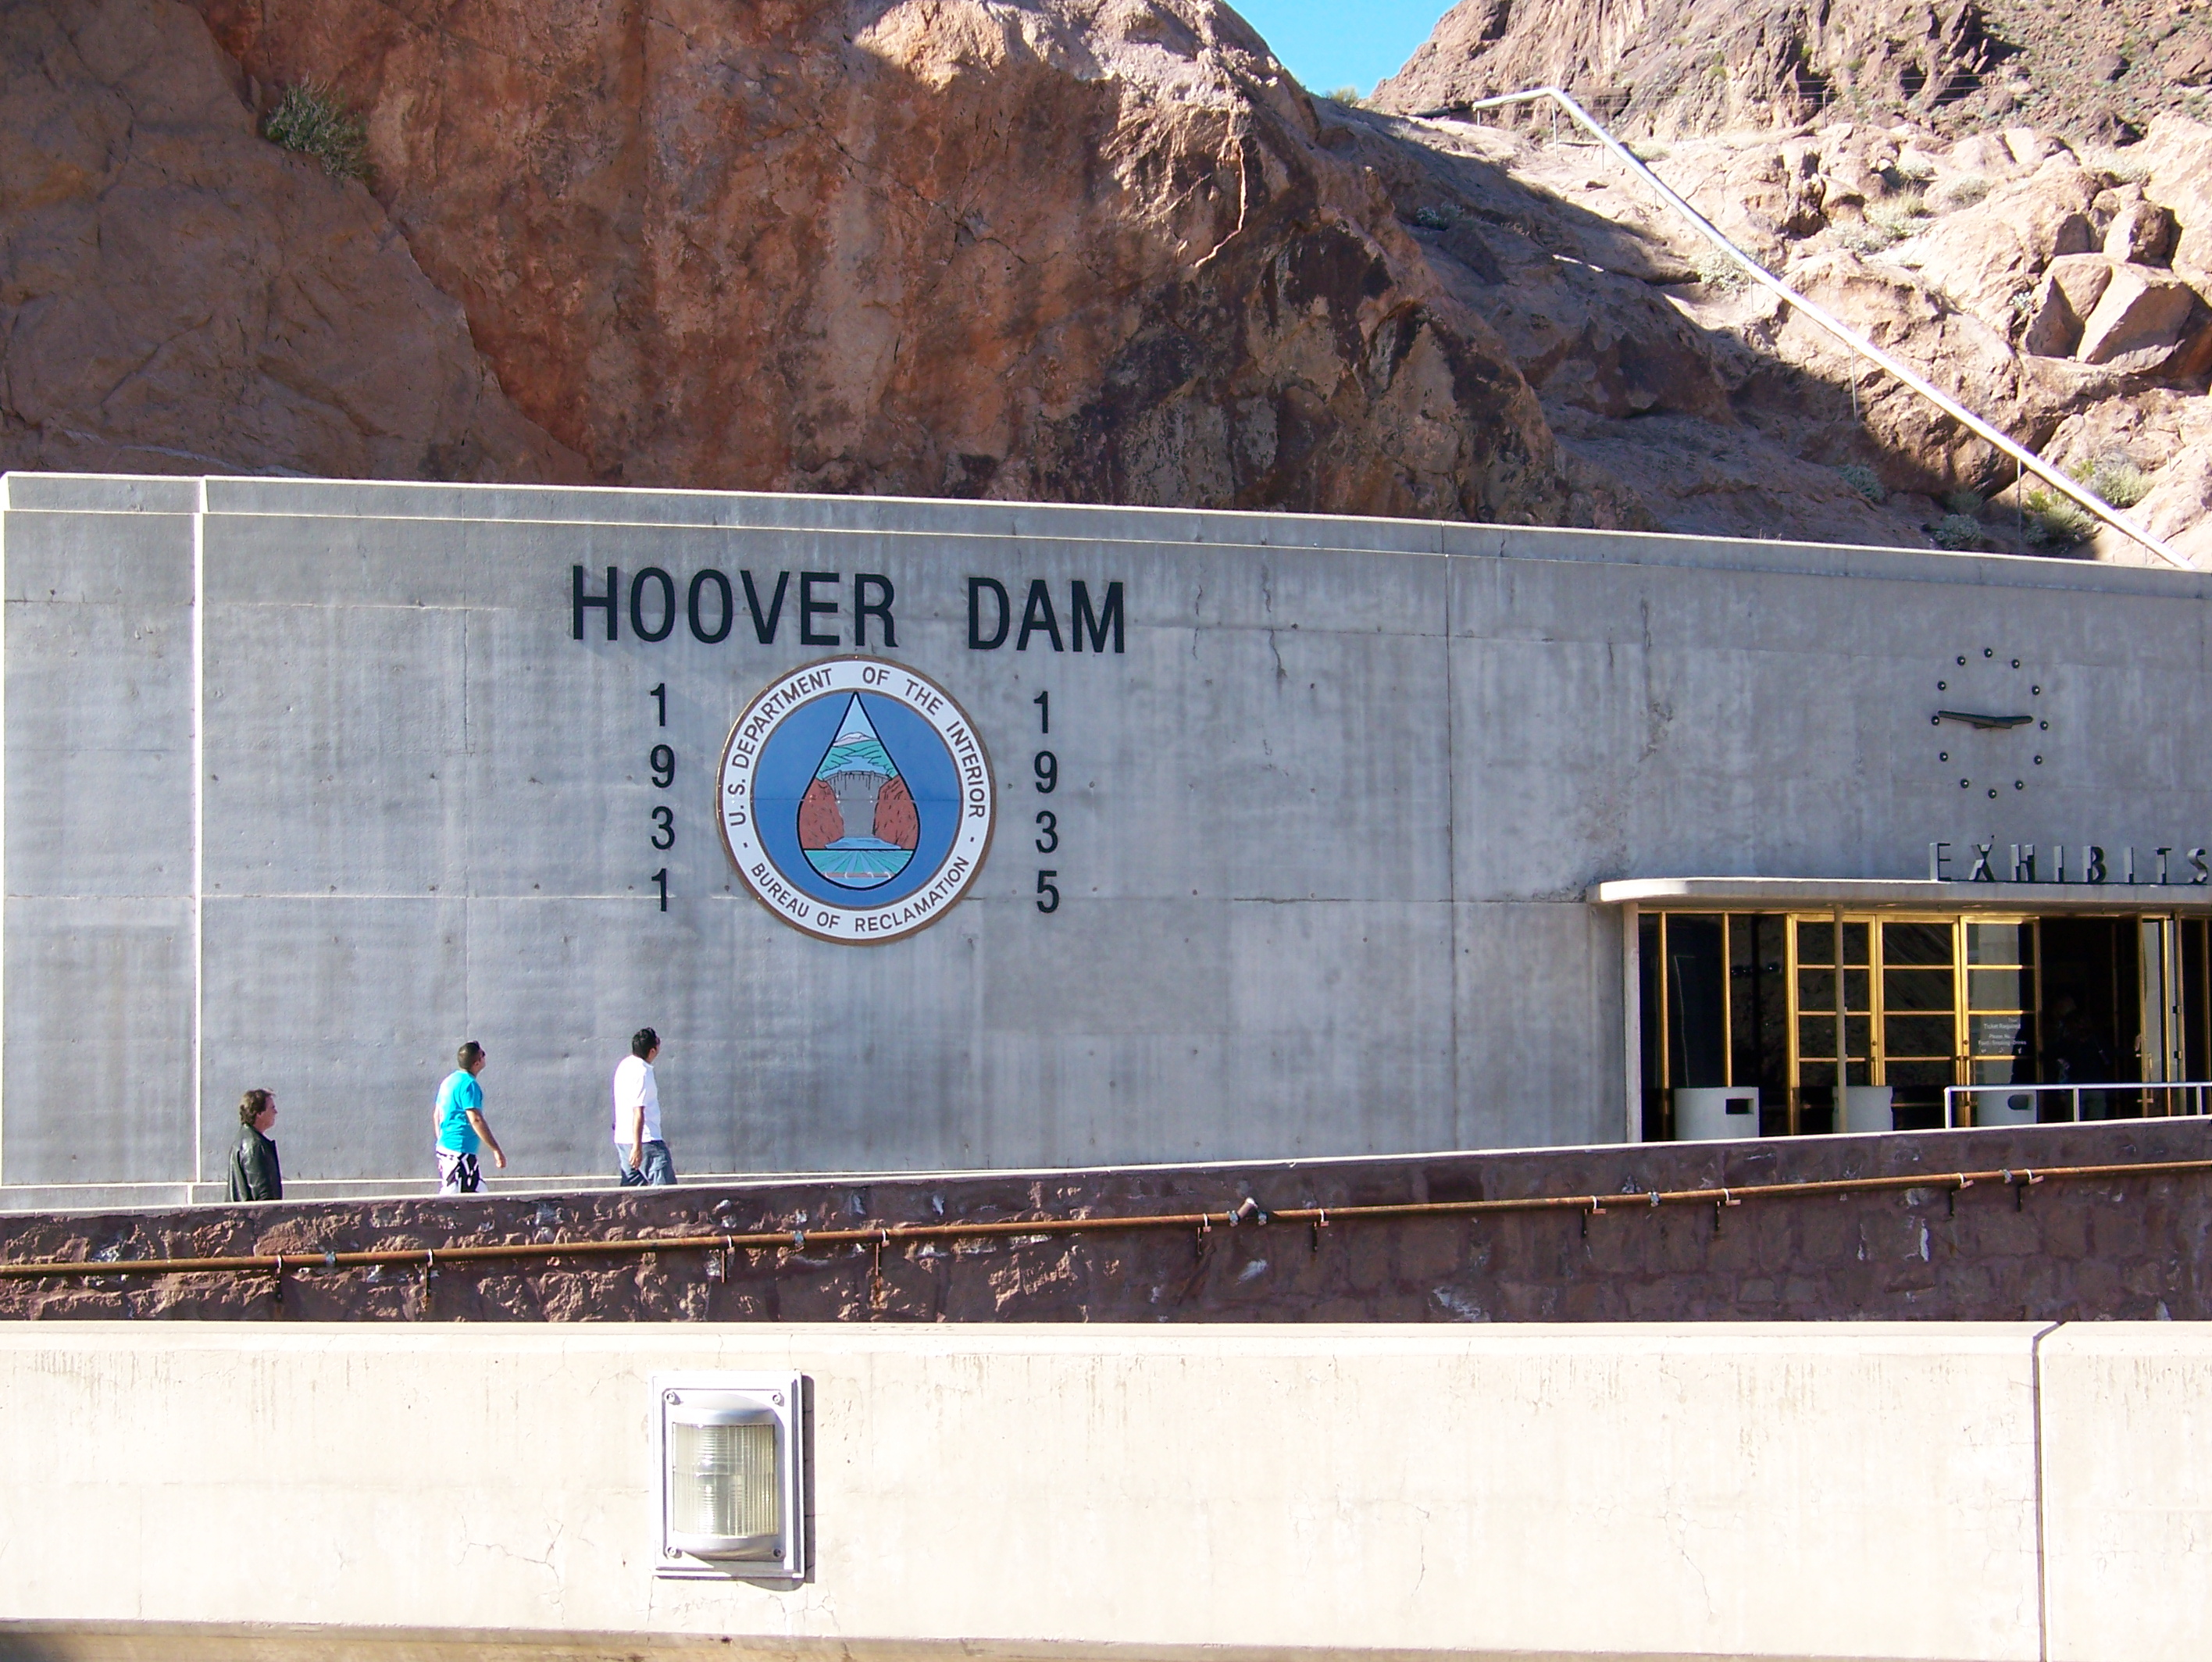 Hanging out at the Hoover Dam for free | travelin' the globe